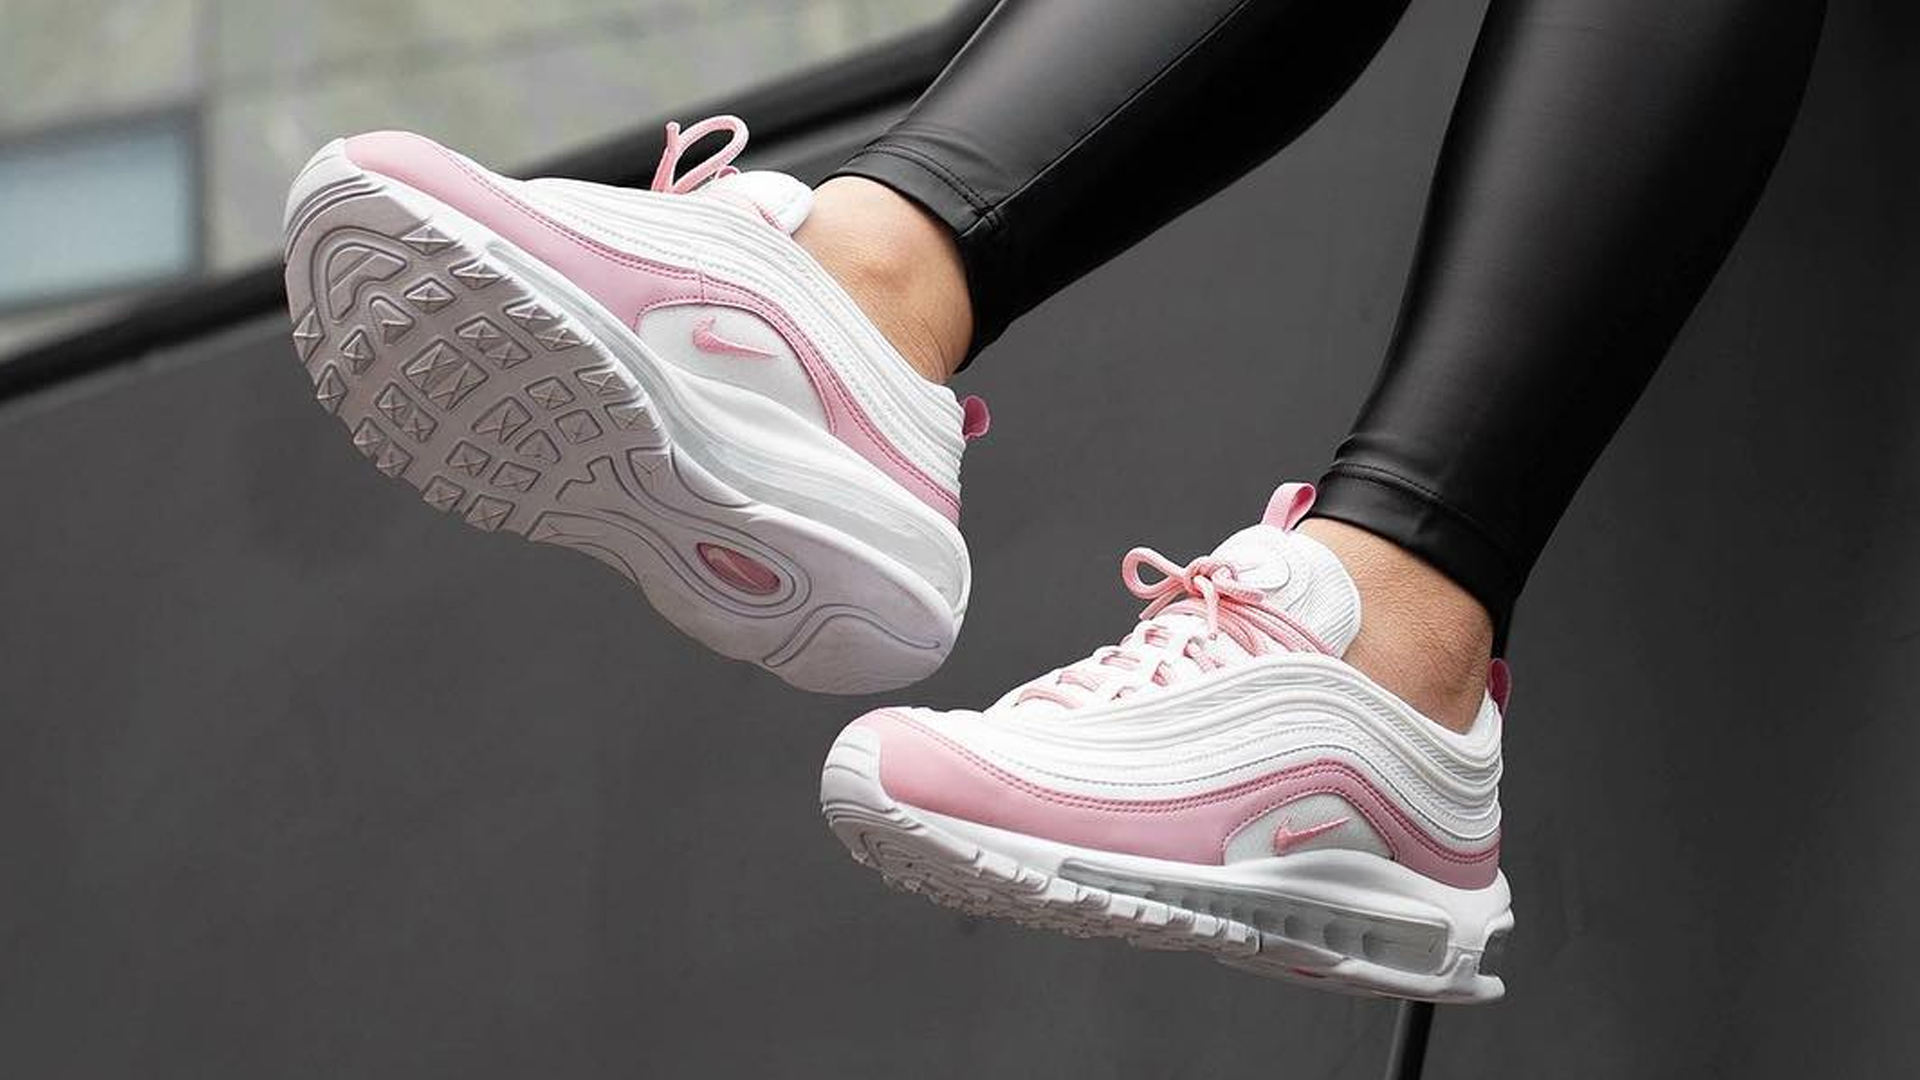 premium selection e5fa5 30ae5 Nike Air Max 97 Essential Psychic Pink   BV1982-100   The Sole Womens